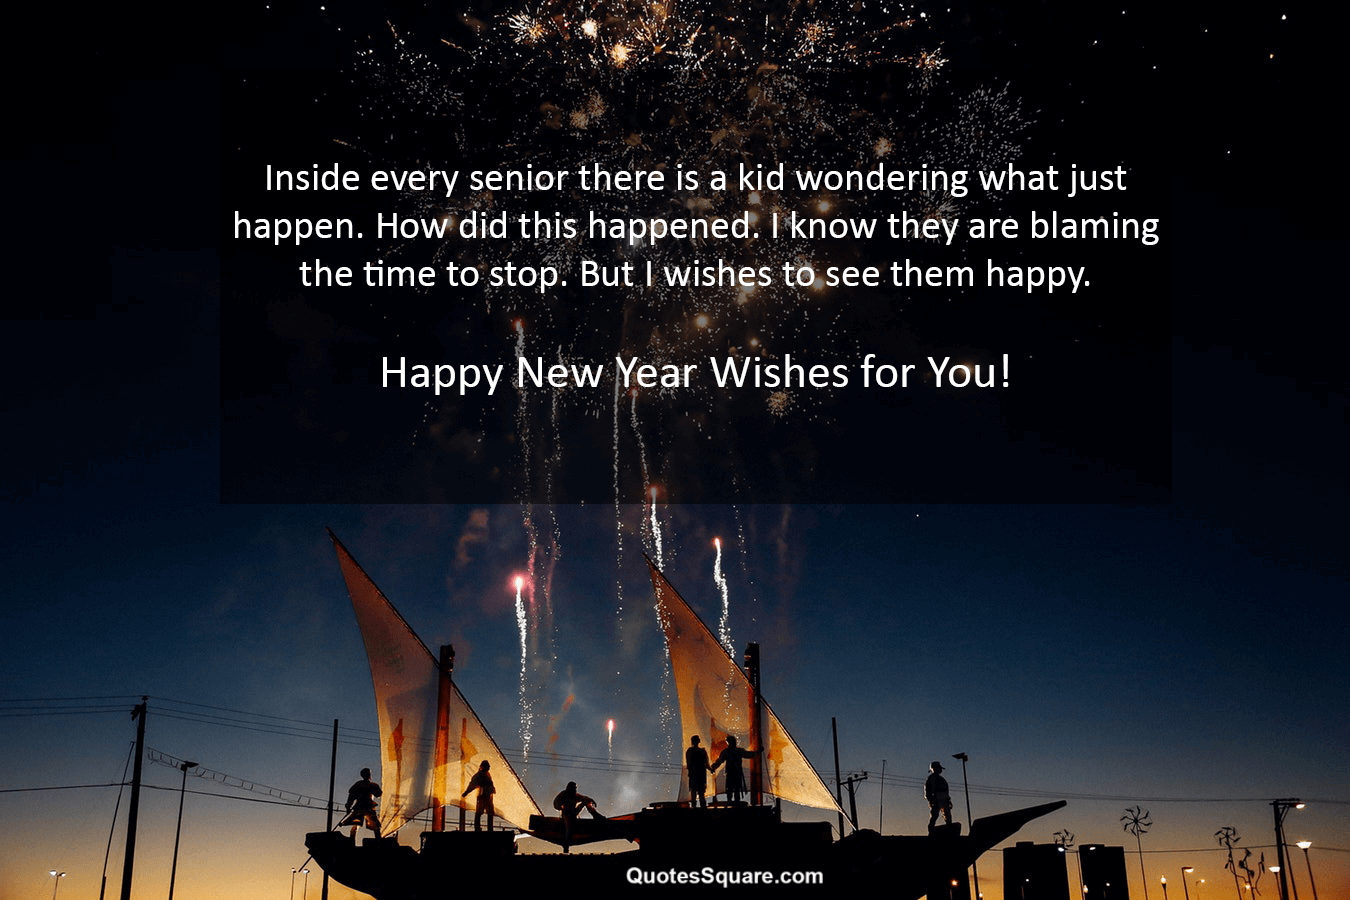 Happy New Year 2019 Greetings Quotes For Seniors Happy New Year Happy New Year Wishes New Year Wishes